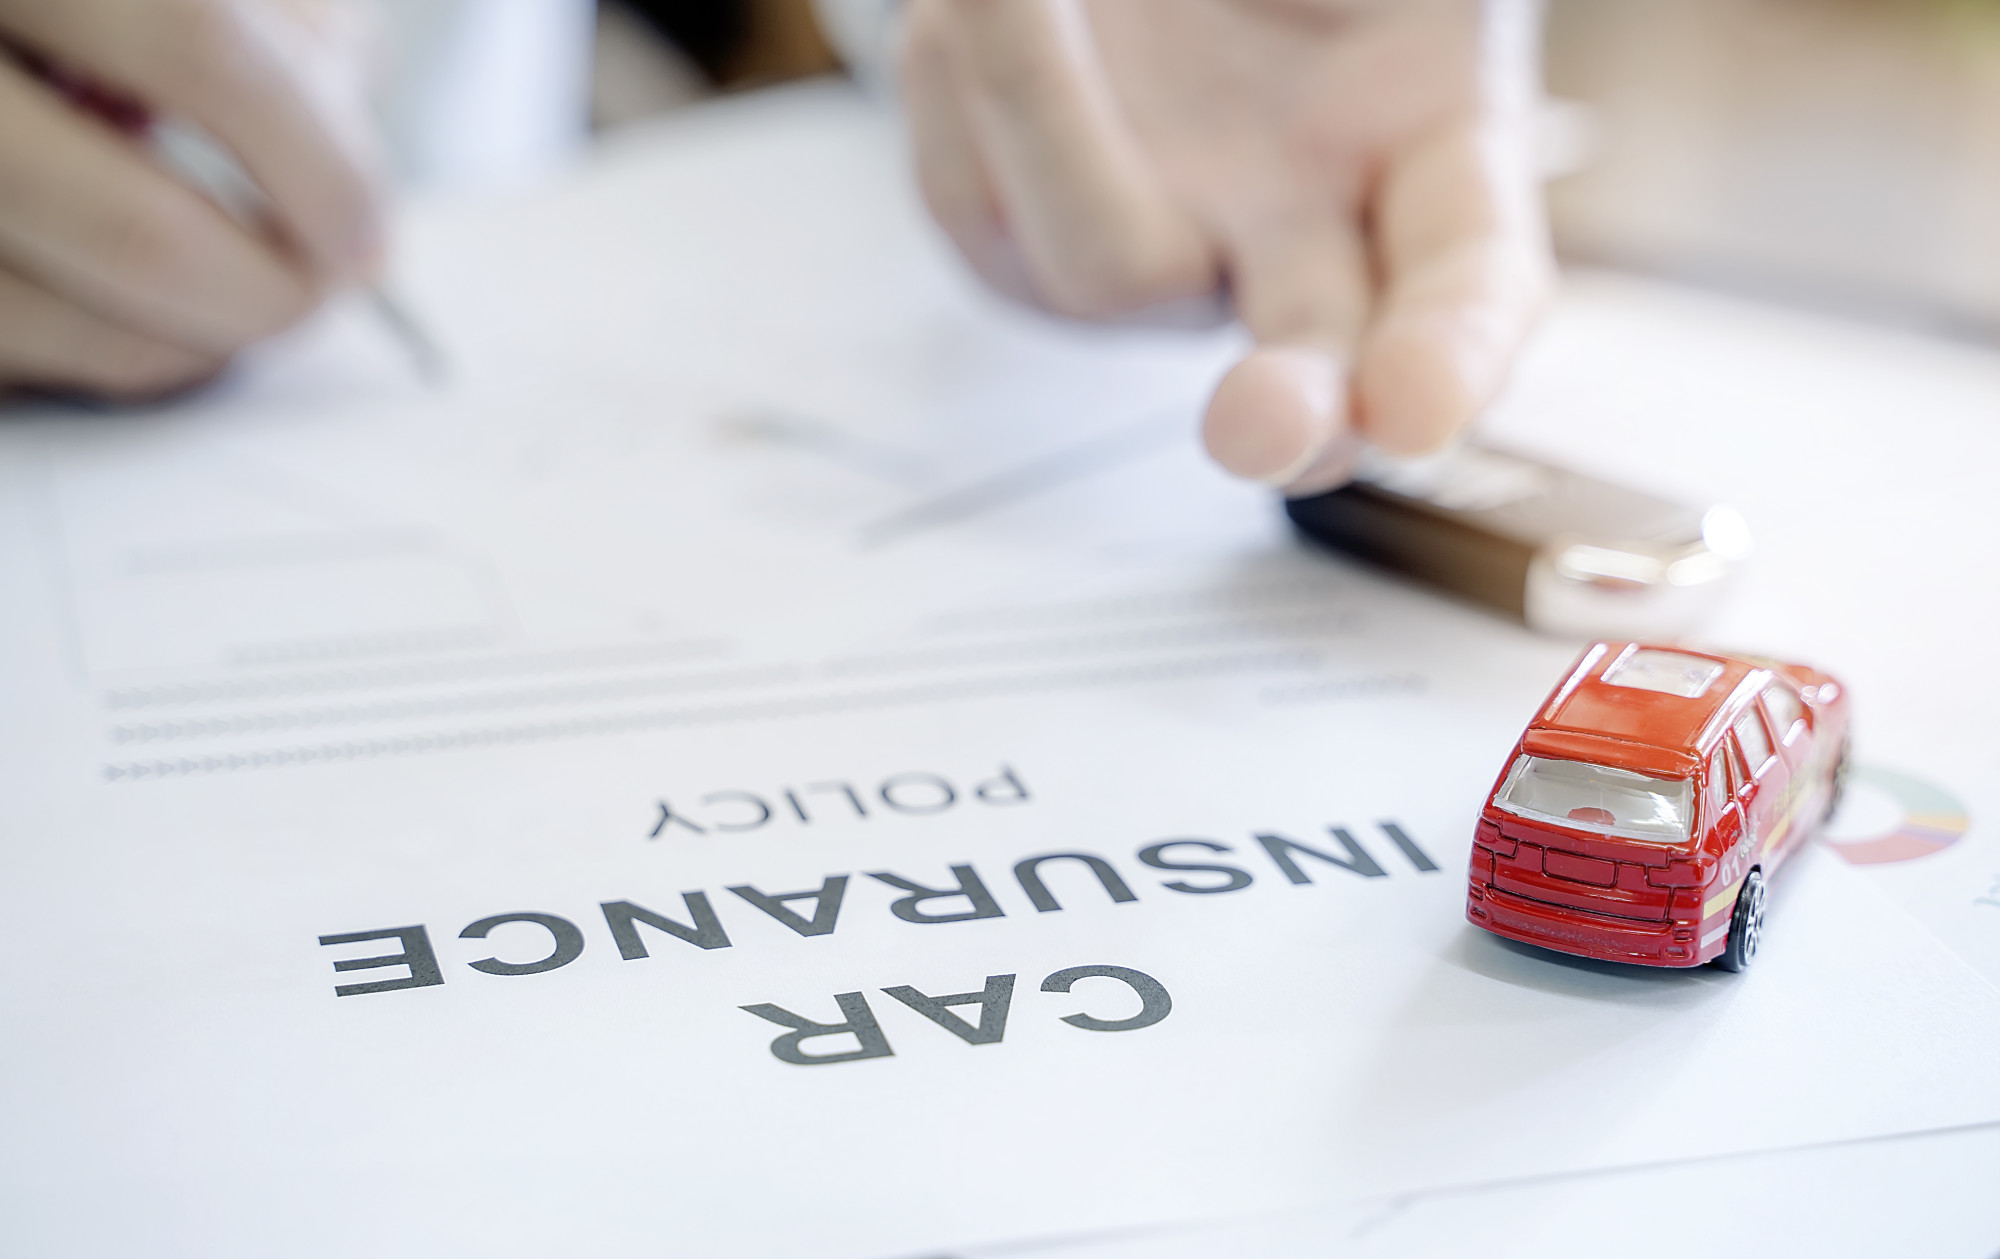 car insurance policy with toy car